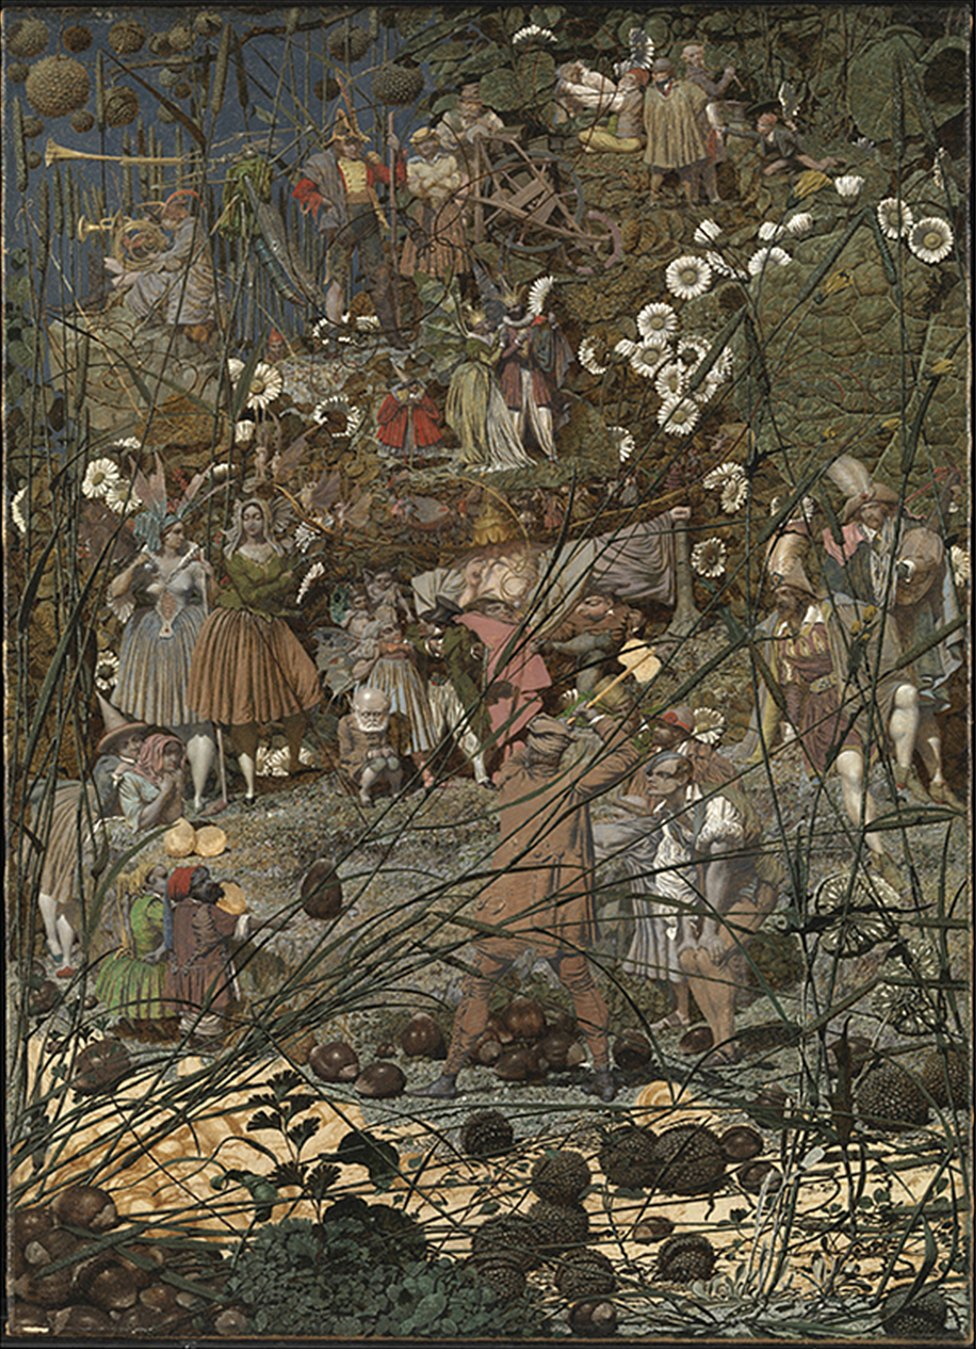 Richard Dadd's The Fairy Feller's Master-Stroke, 1855-64 (which is on display at Tate Britain from 12 October 2020)